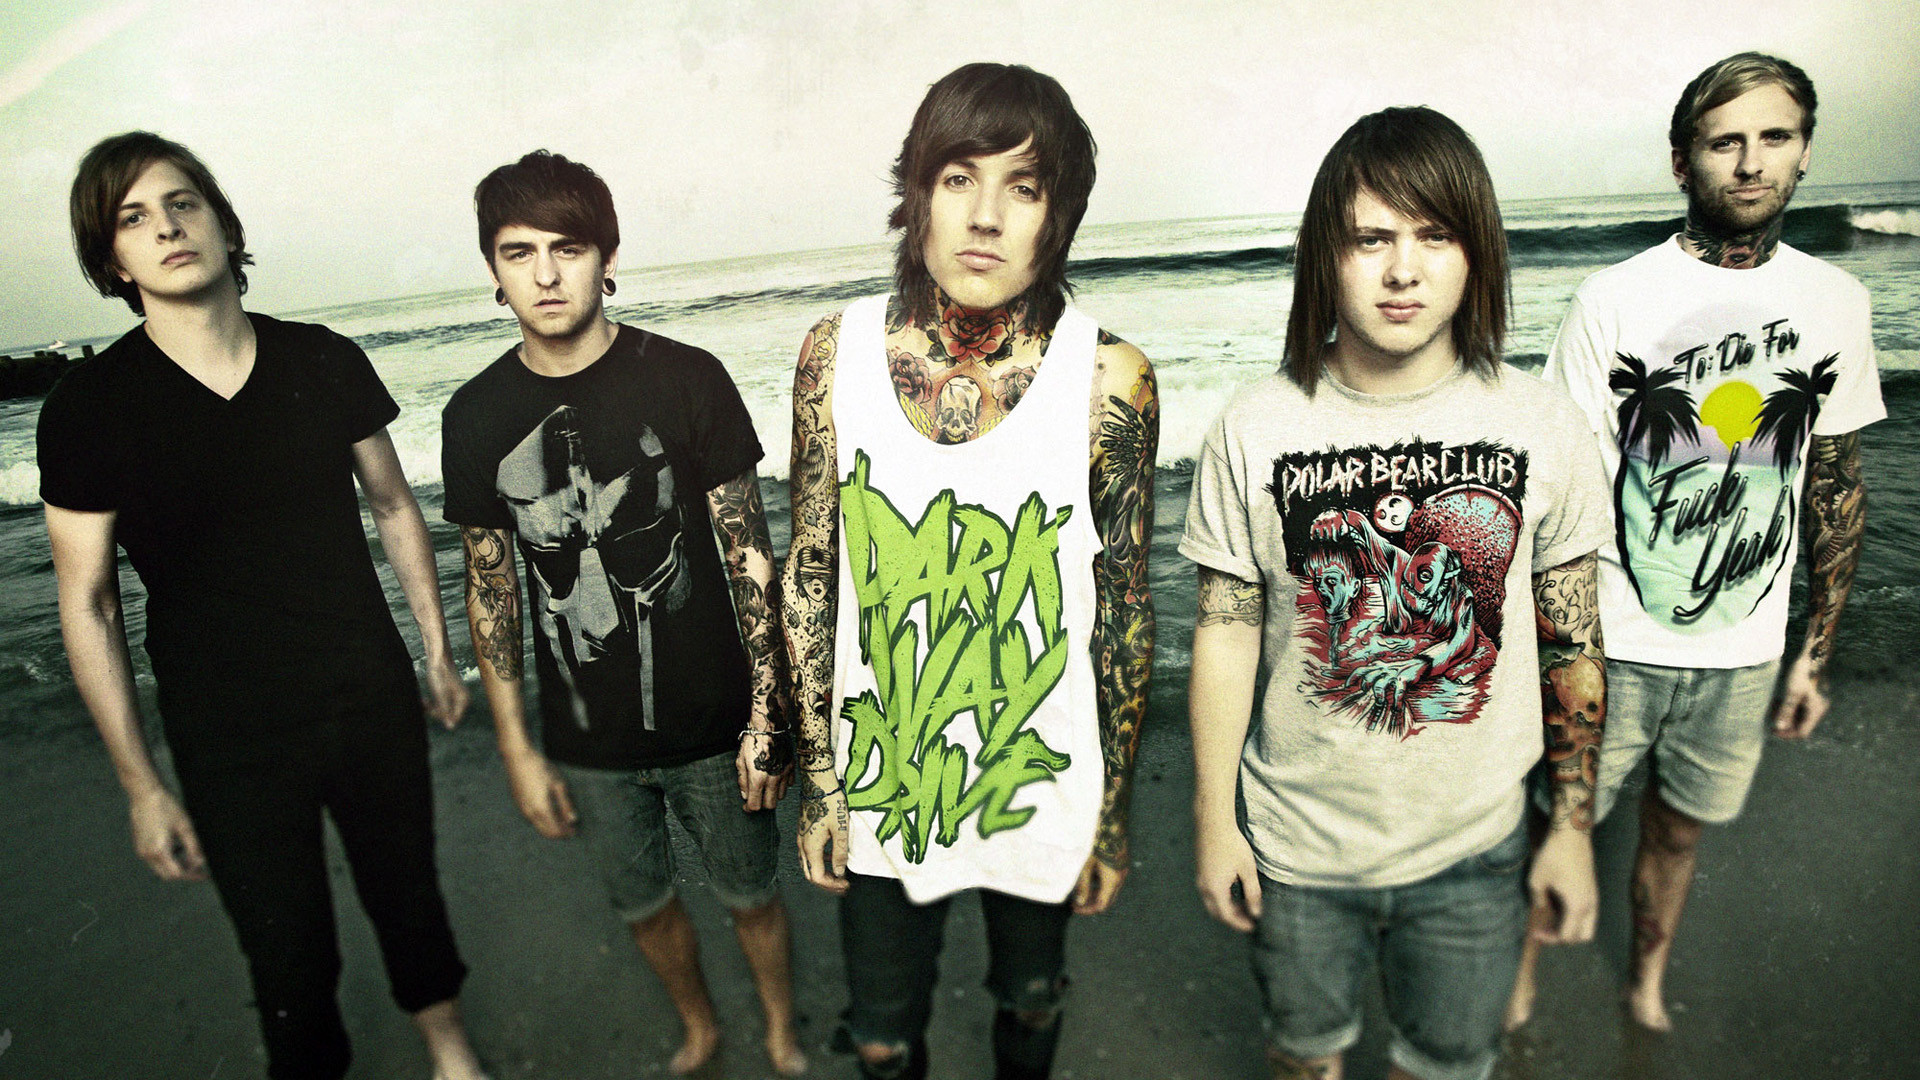 1920x1080 1920x1080 Bring me the Horizon Desktop Wallpaper